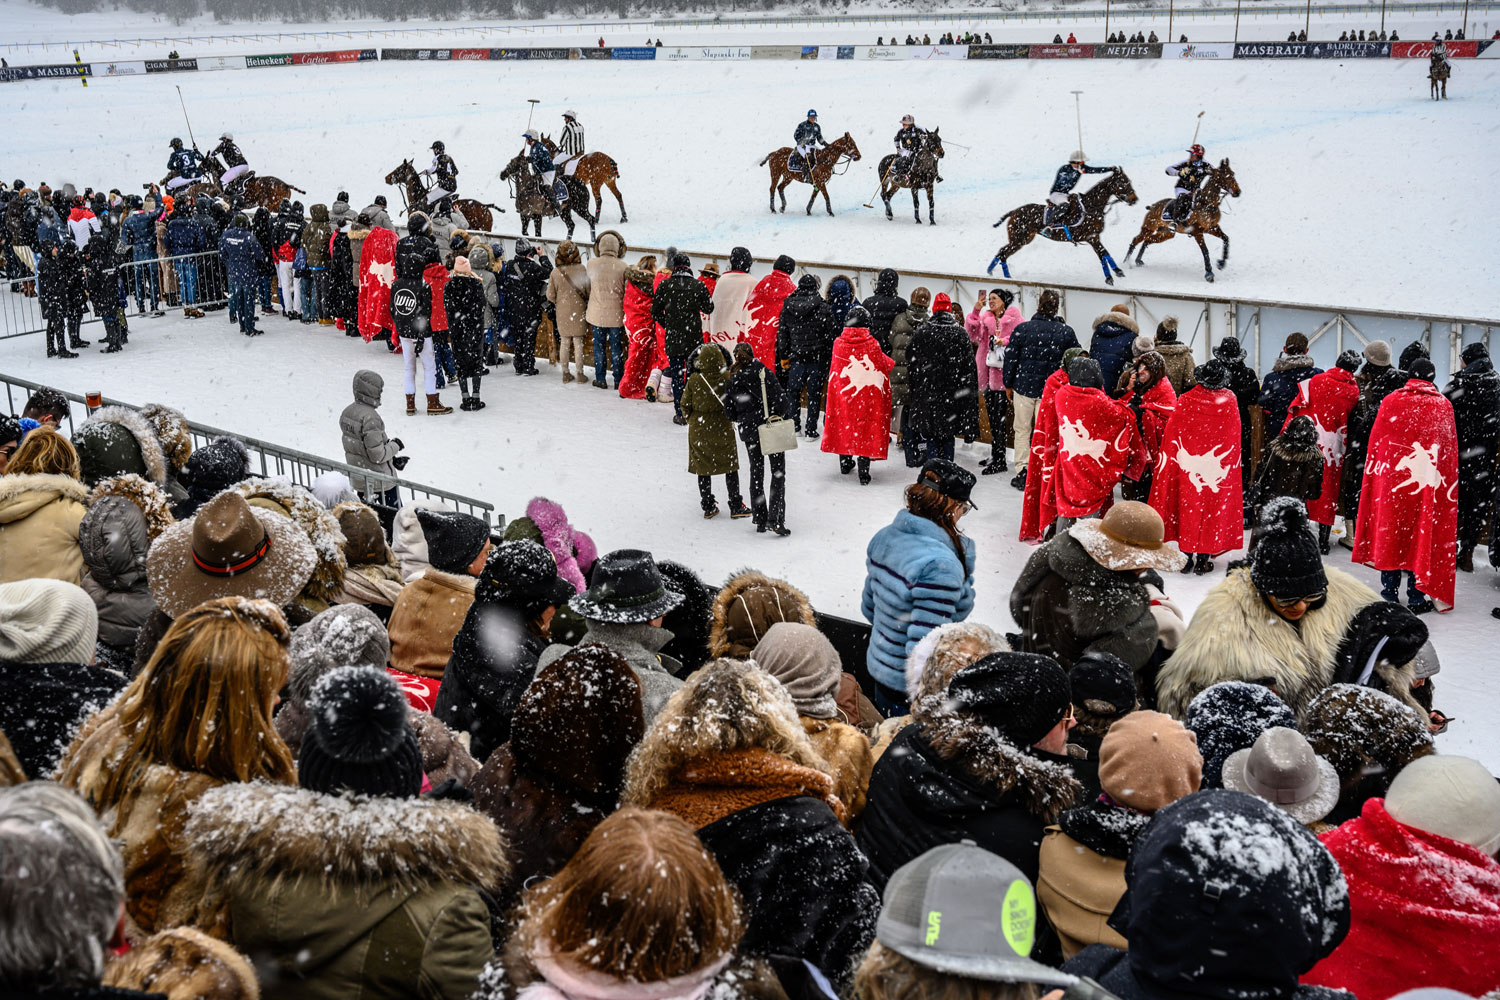 The 35th Snow Polo World Cup played host to a record number of spectators